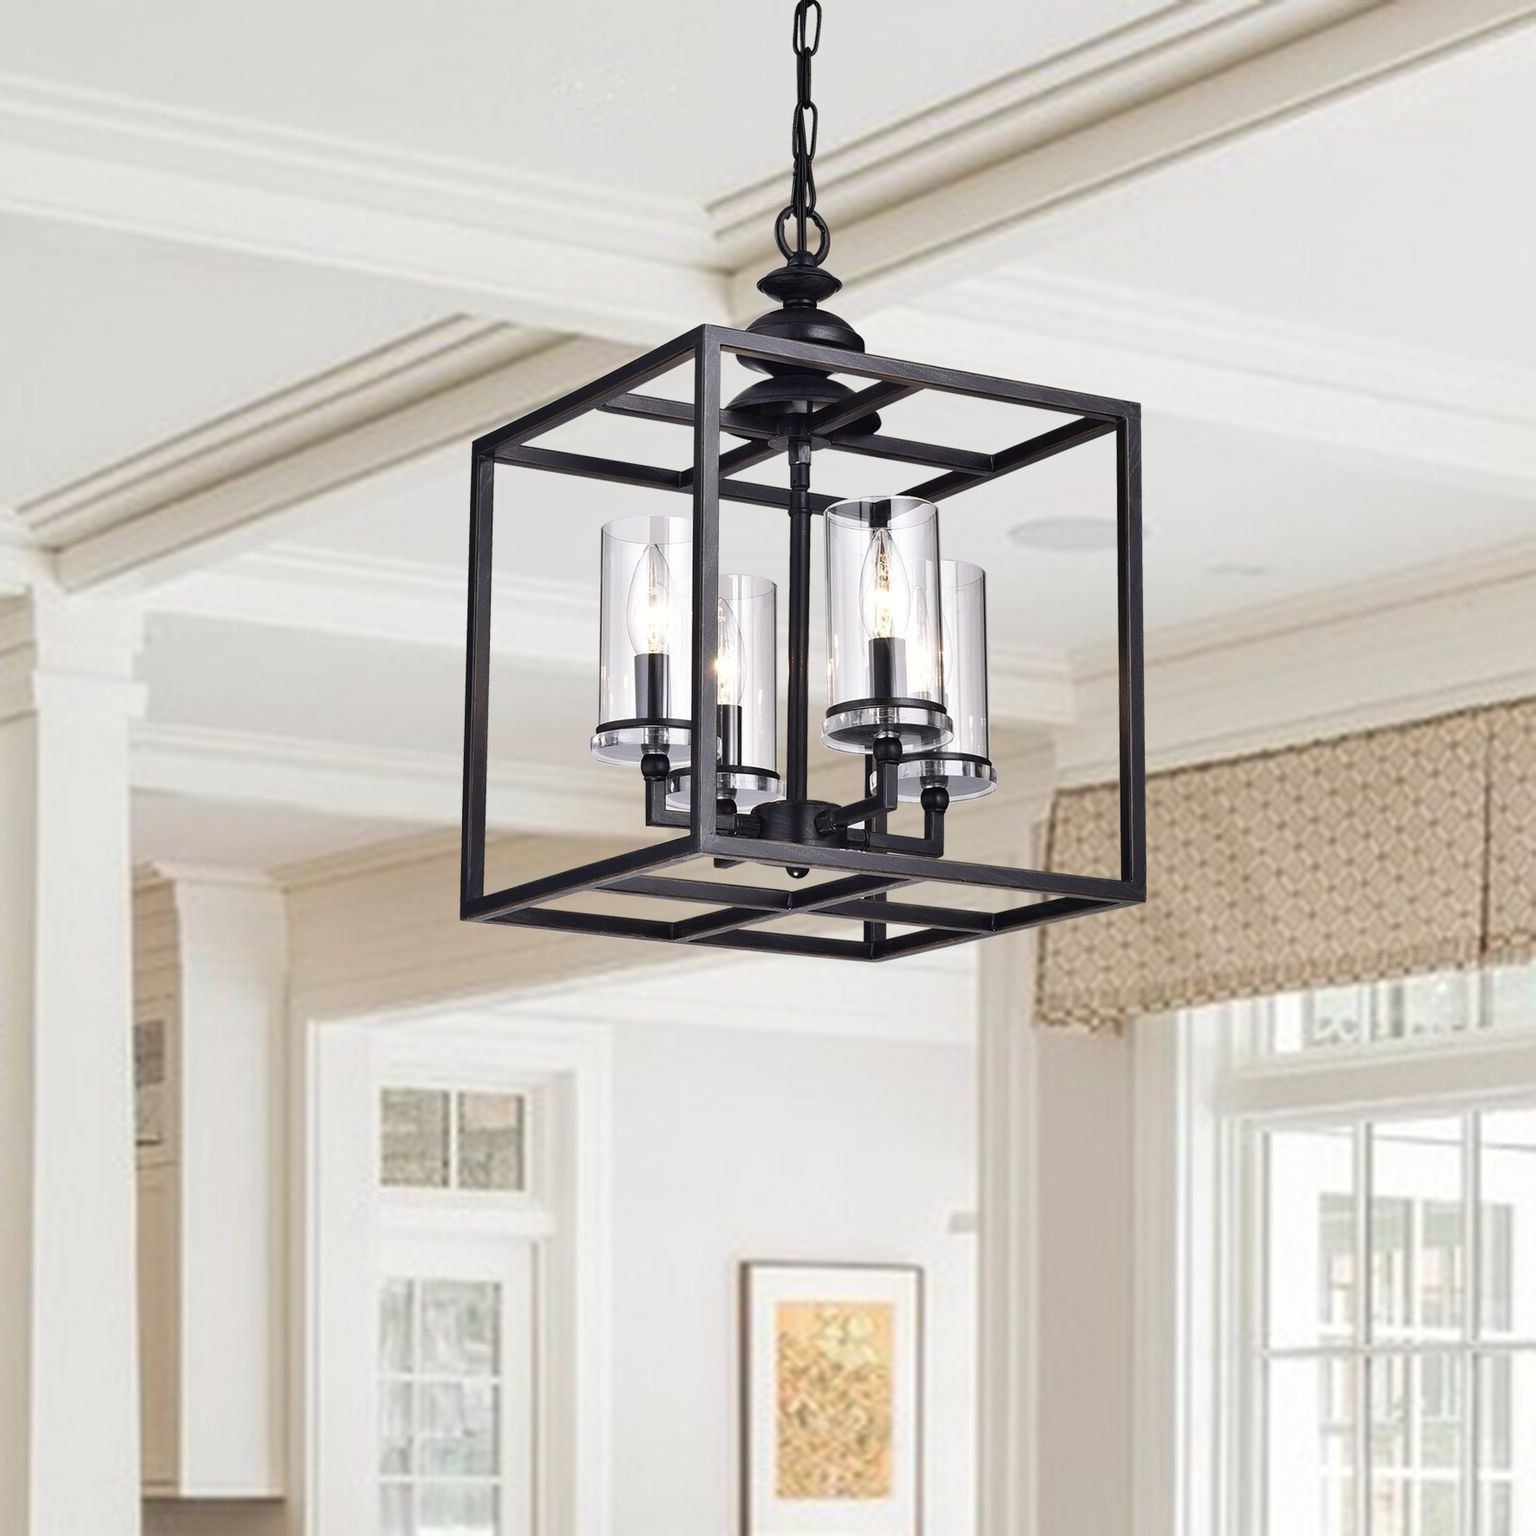 Cheverton 4 Light Square/rectangle Chandelier Throughout Most Popular Delon 4 Light Square Chandeliers (Gallery 13 of 20)